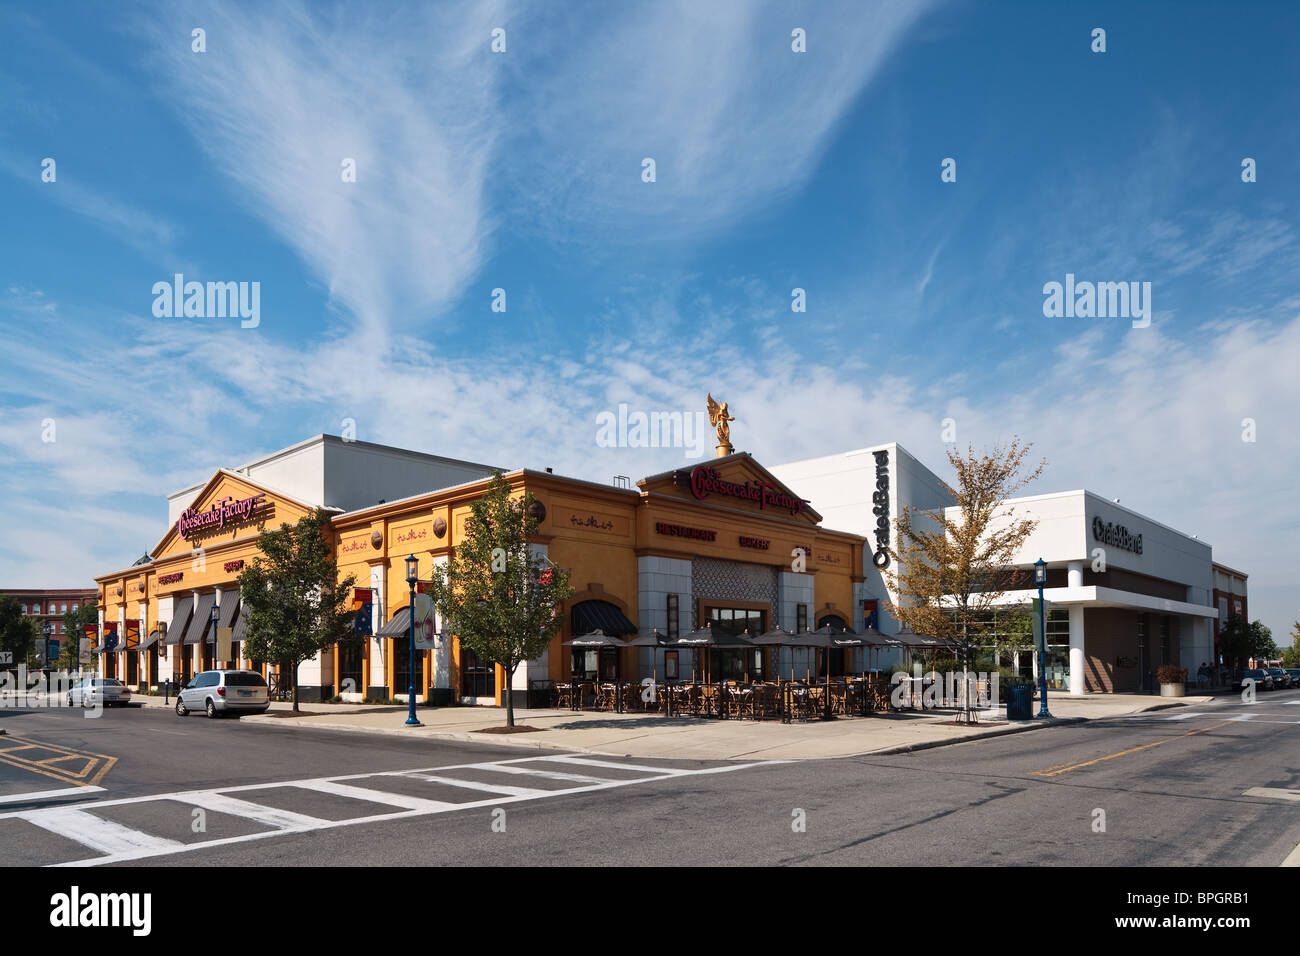 The Cheesecake Factory At Easton Town Center In Columbus Ohio Stock Image